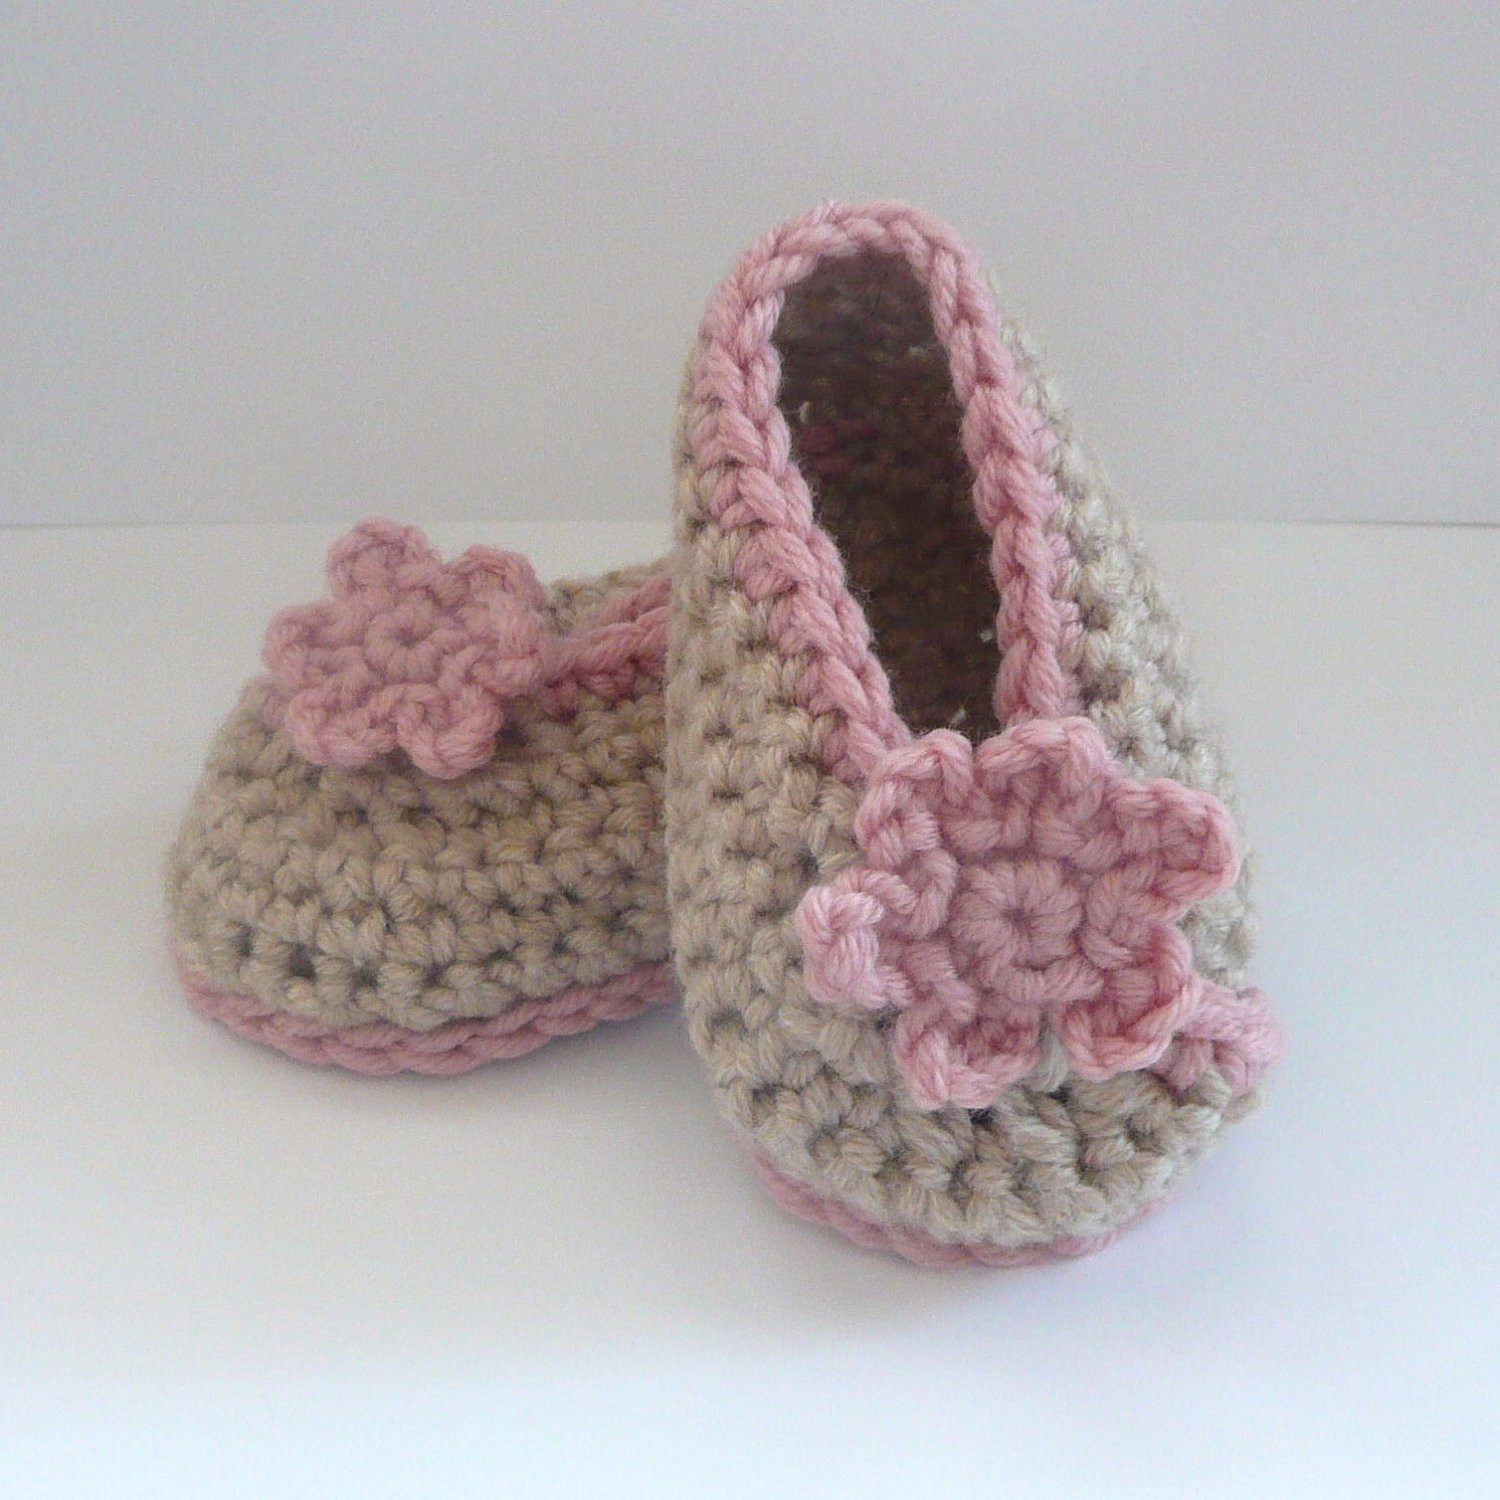 Free Crochet Baby Booties New Crochet Pattern Baby Booties Crossover Baby Shoes Instant Of Wonderful 49 Photos Free Crochet Baby Booties